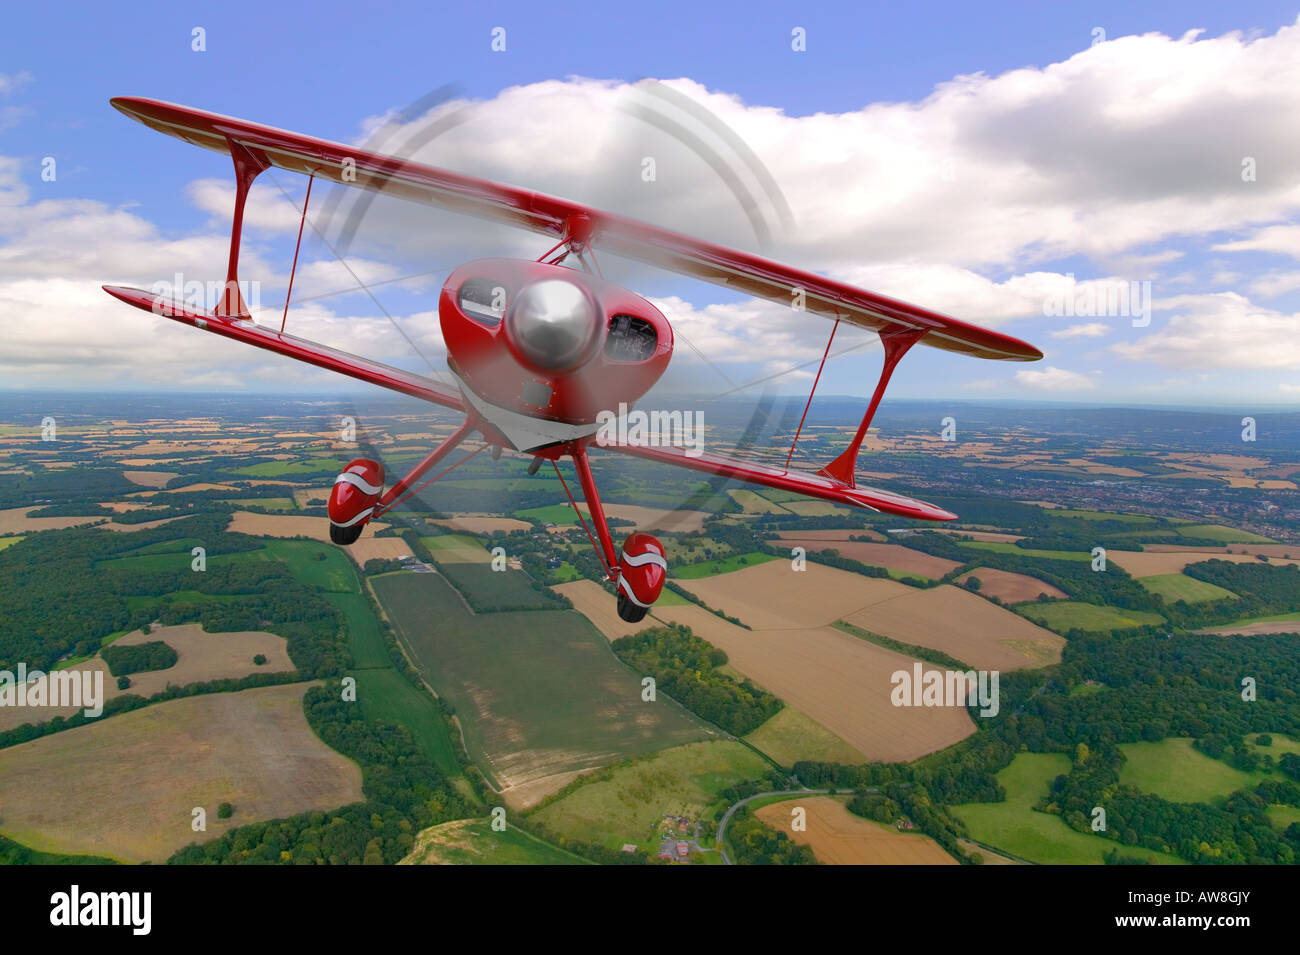 A red stunt biplane in flight over rural countryside - Stock Image